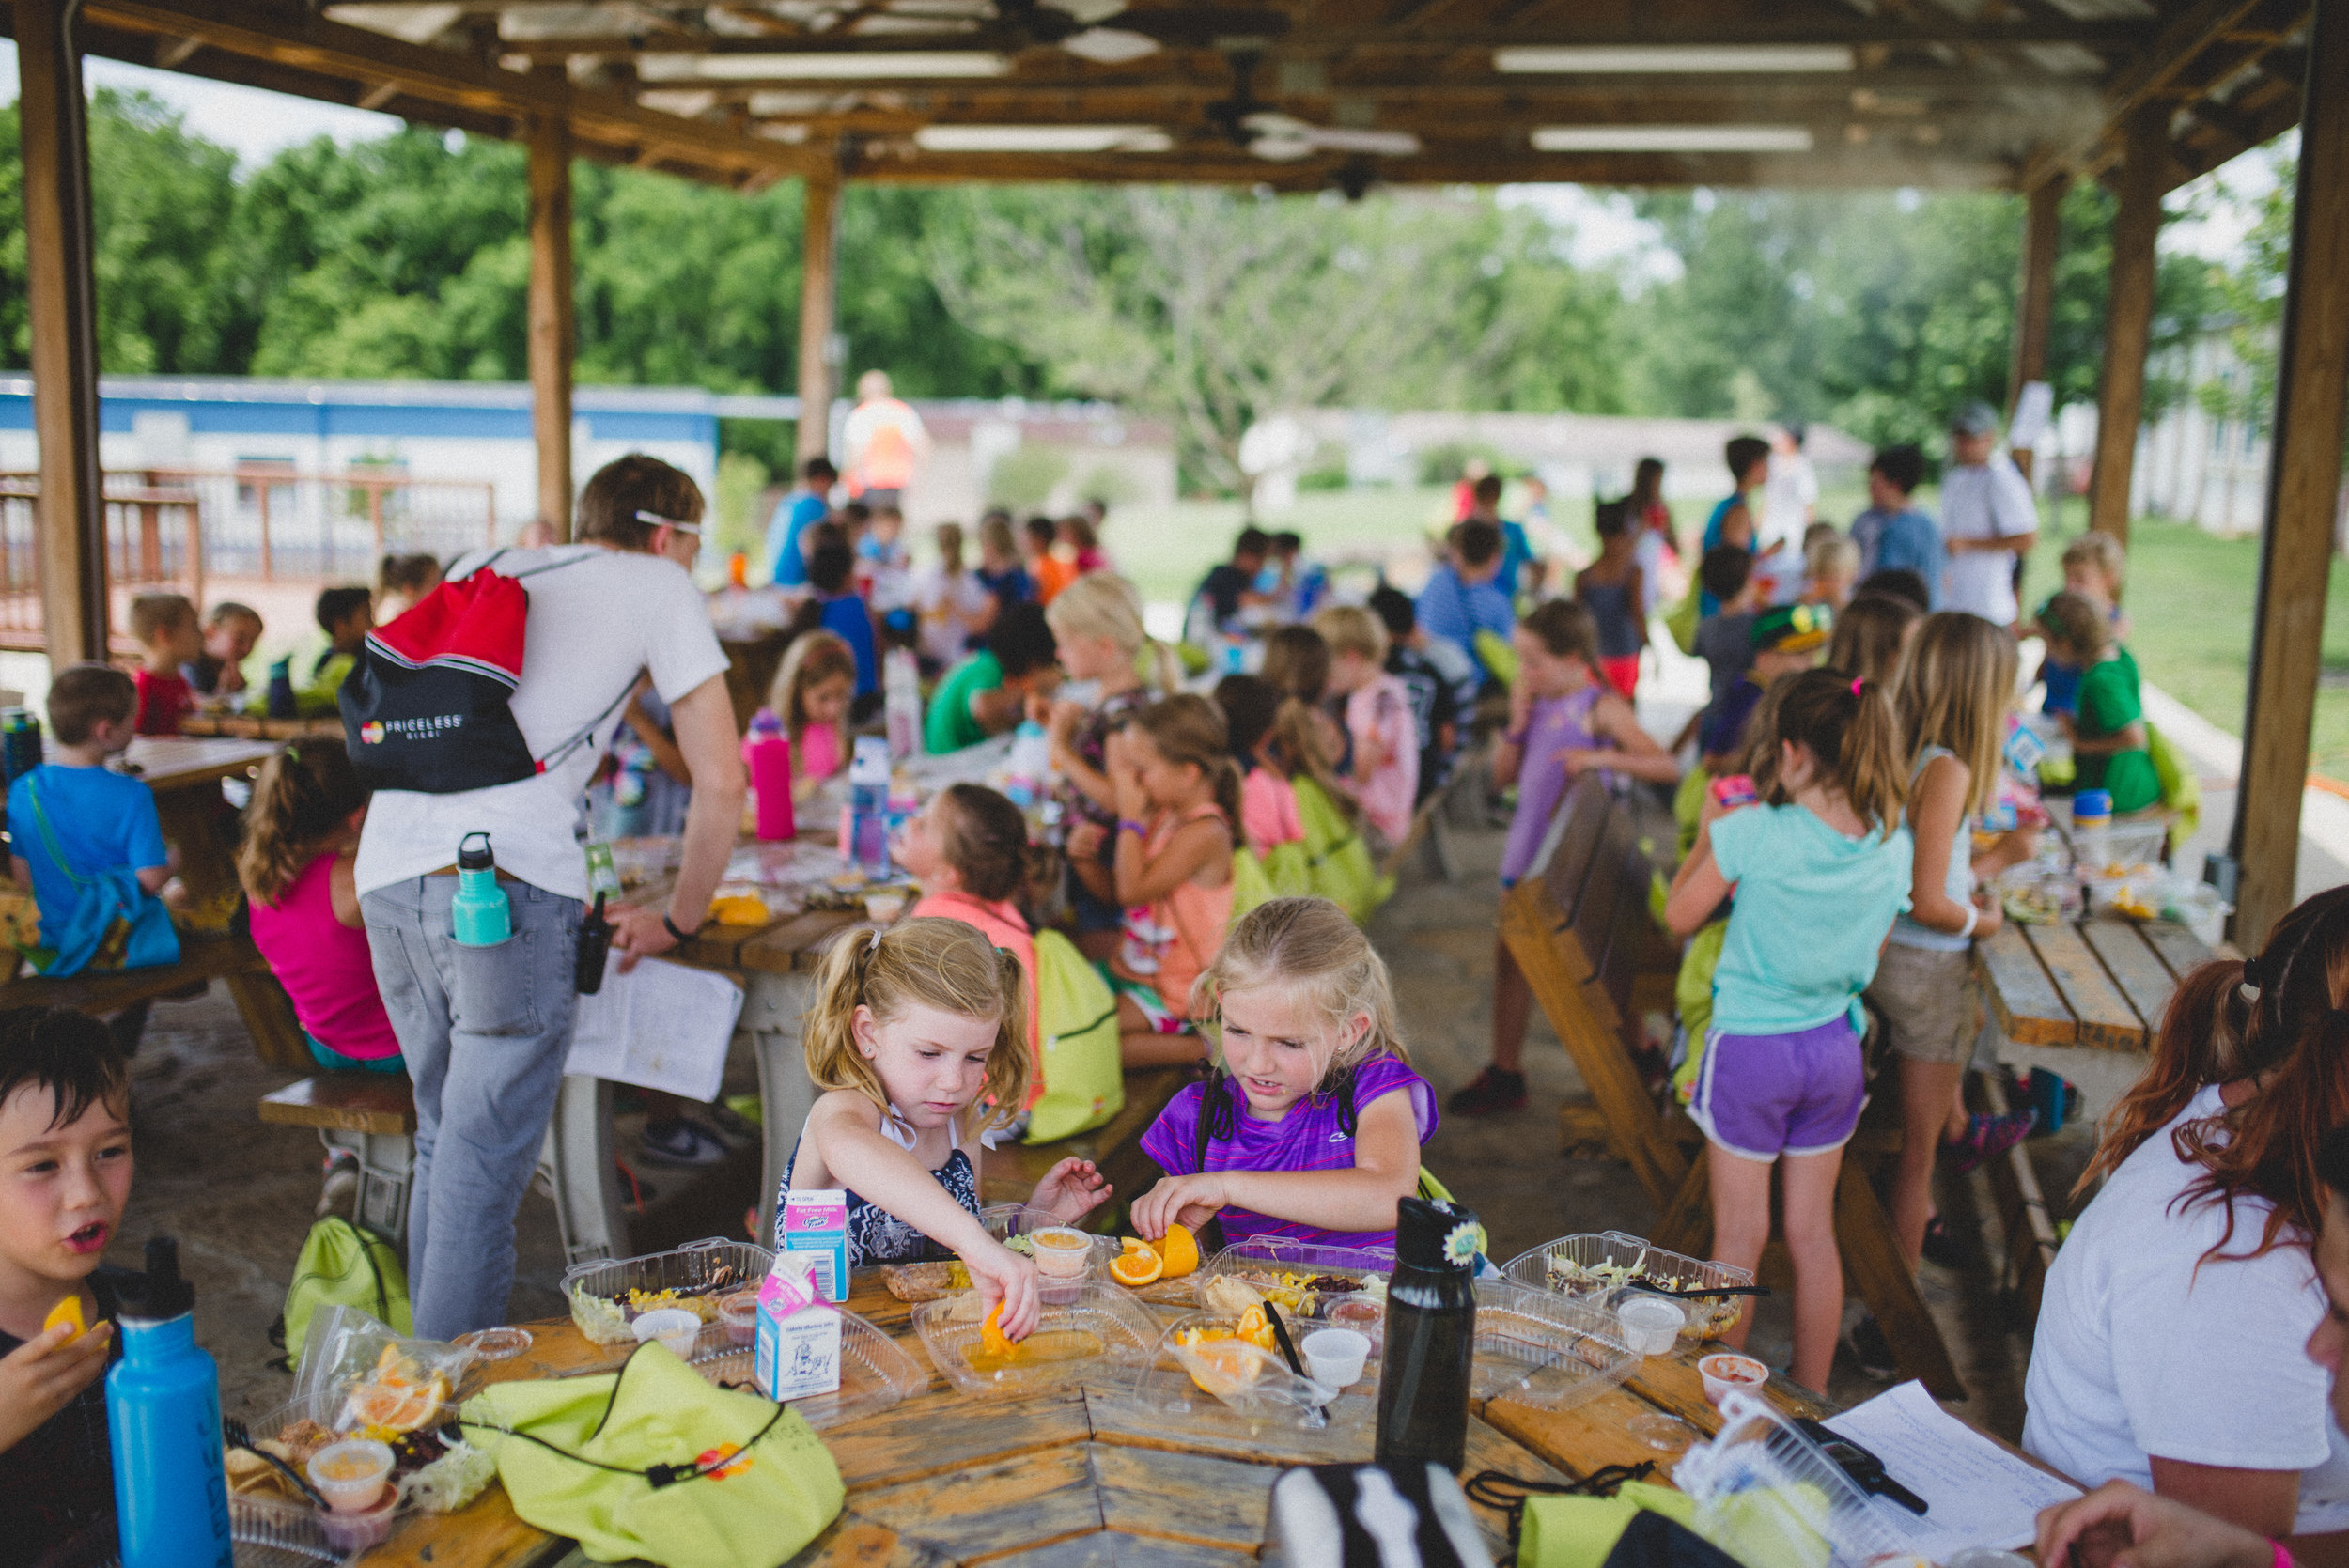 Campers at Camp Skillz enjoyed healthy breakfasts and lunches every day of camp for 6 weeks this summer.